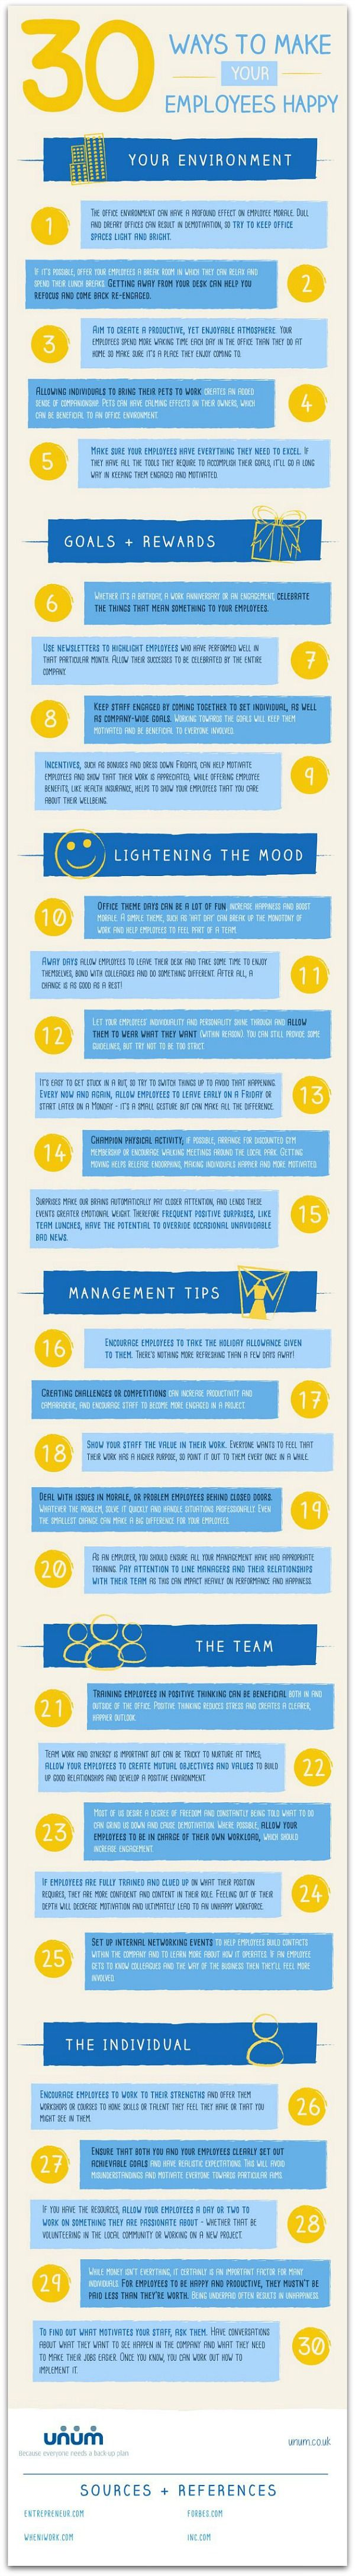 #Infographic: 30 ways to make employees happy